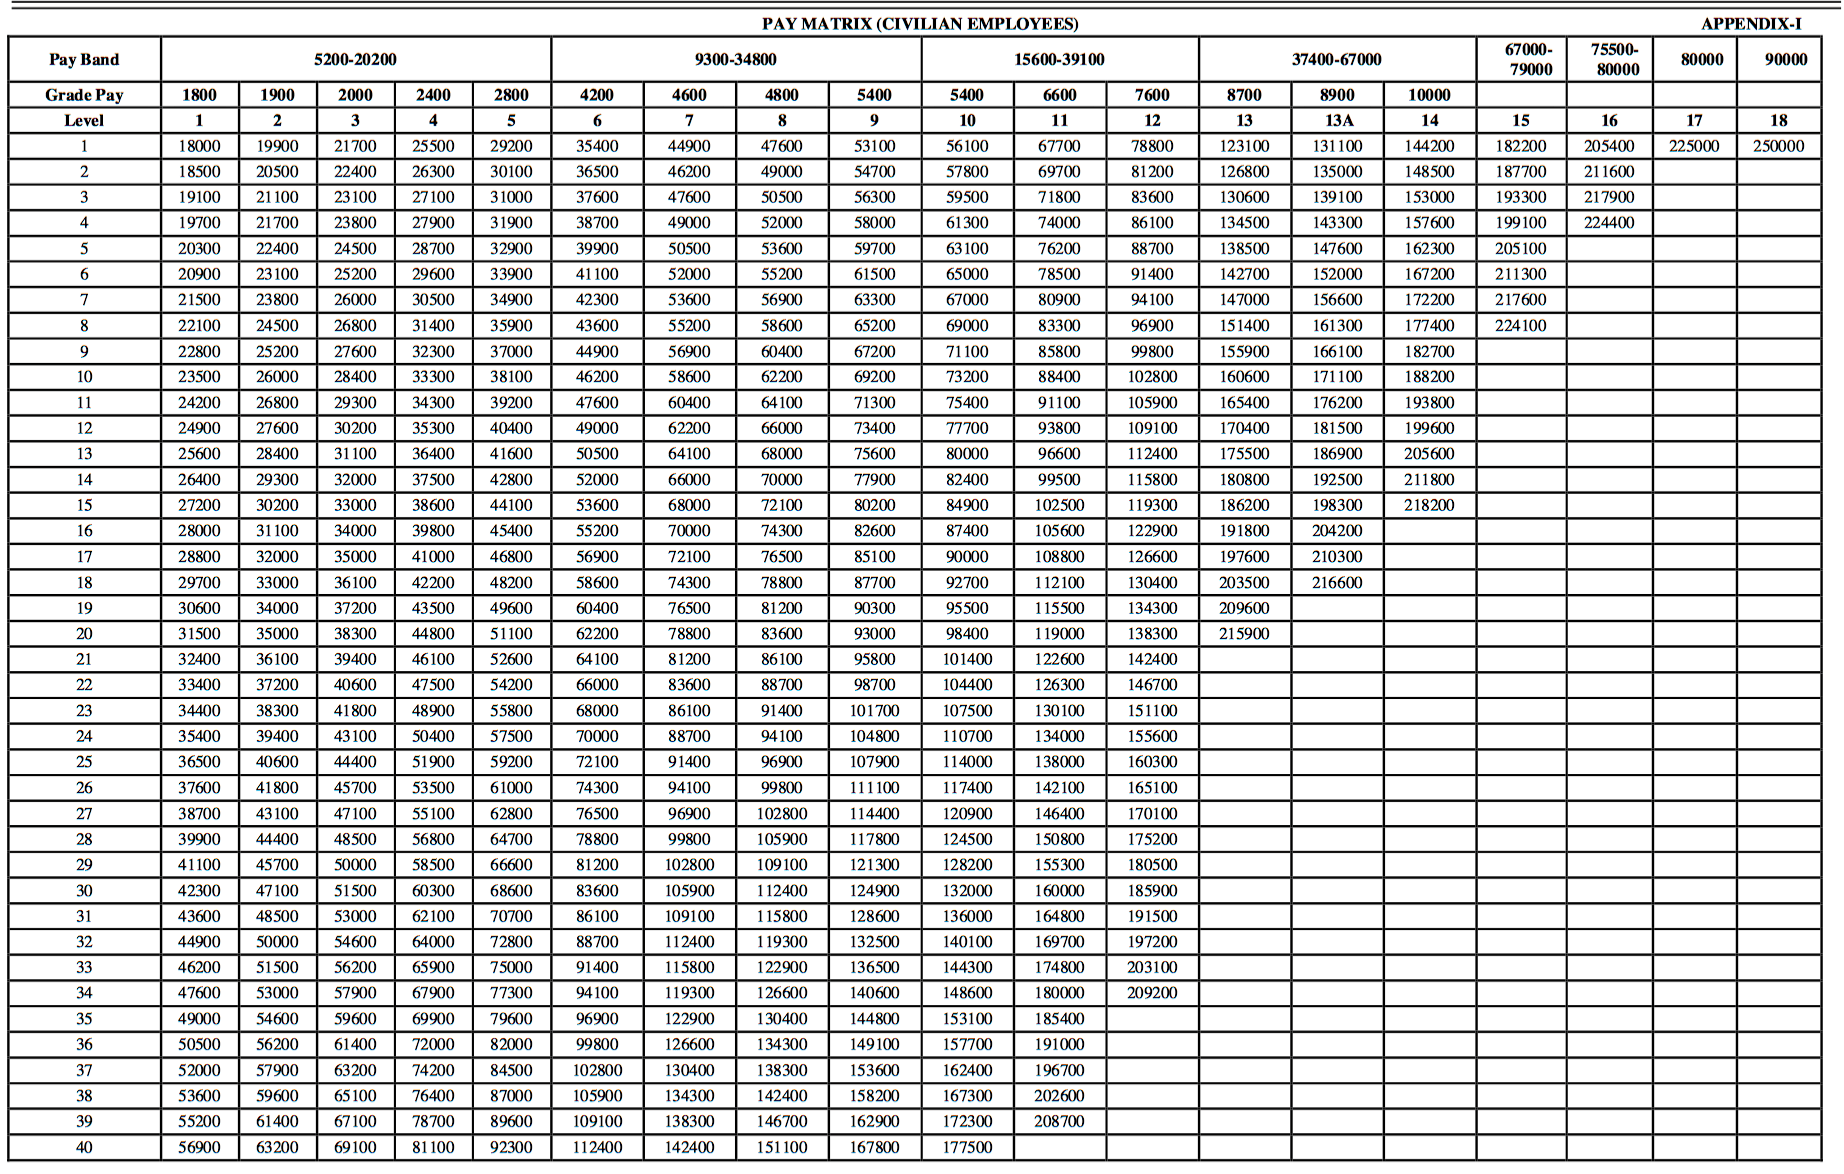 7th pay commission pay matrix table for central government employees